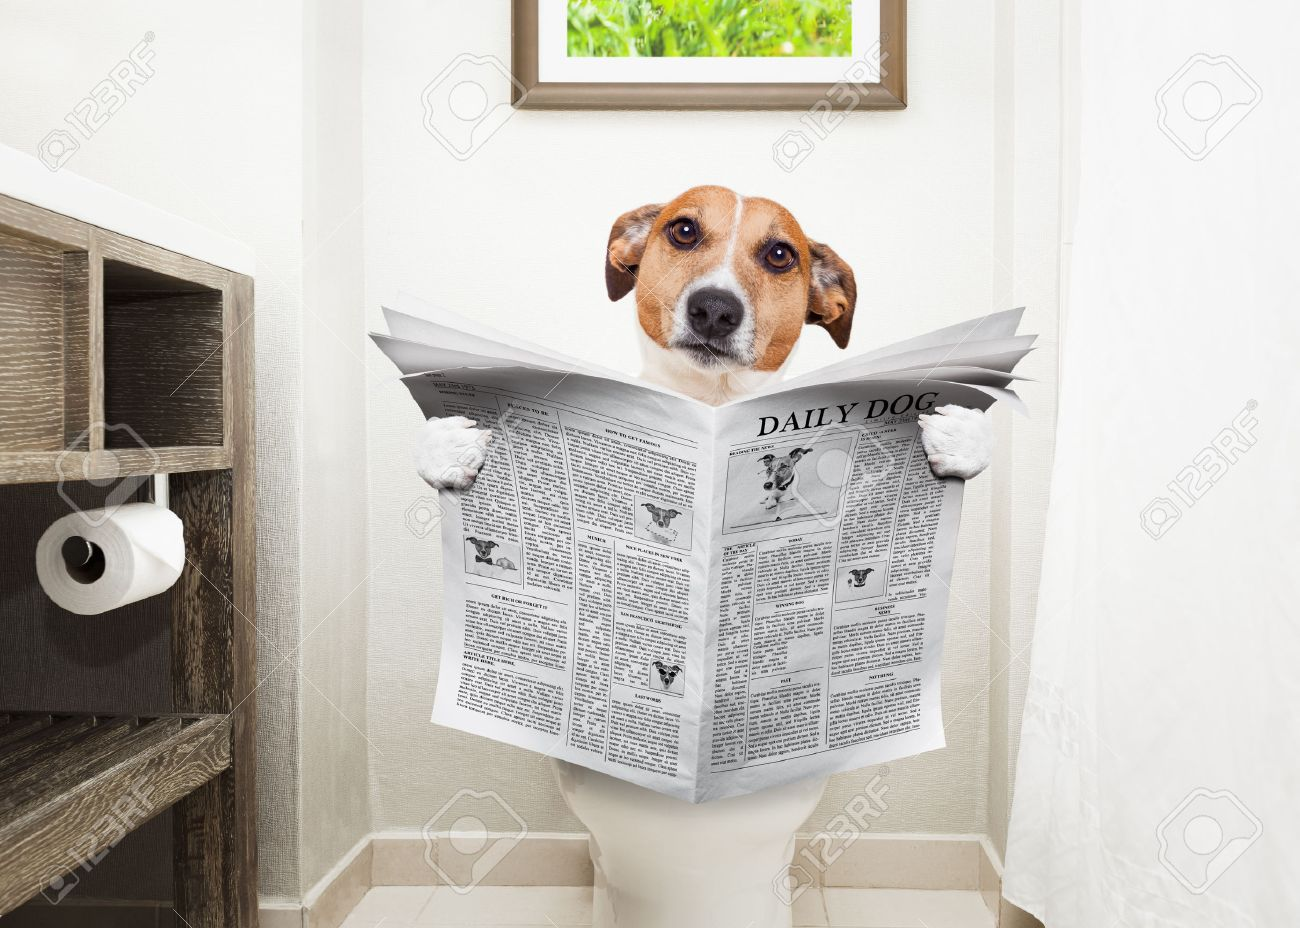 How to go to bathroom when constipated - Jack Russell Terrier Sitting On A Toilet Seat With Digestion Problems Or Constipation Reading The